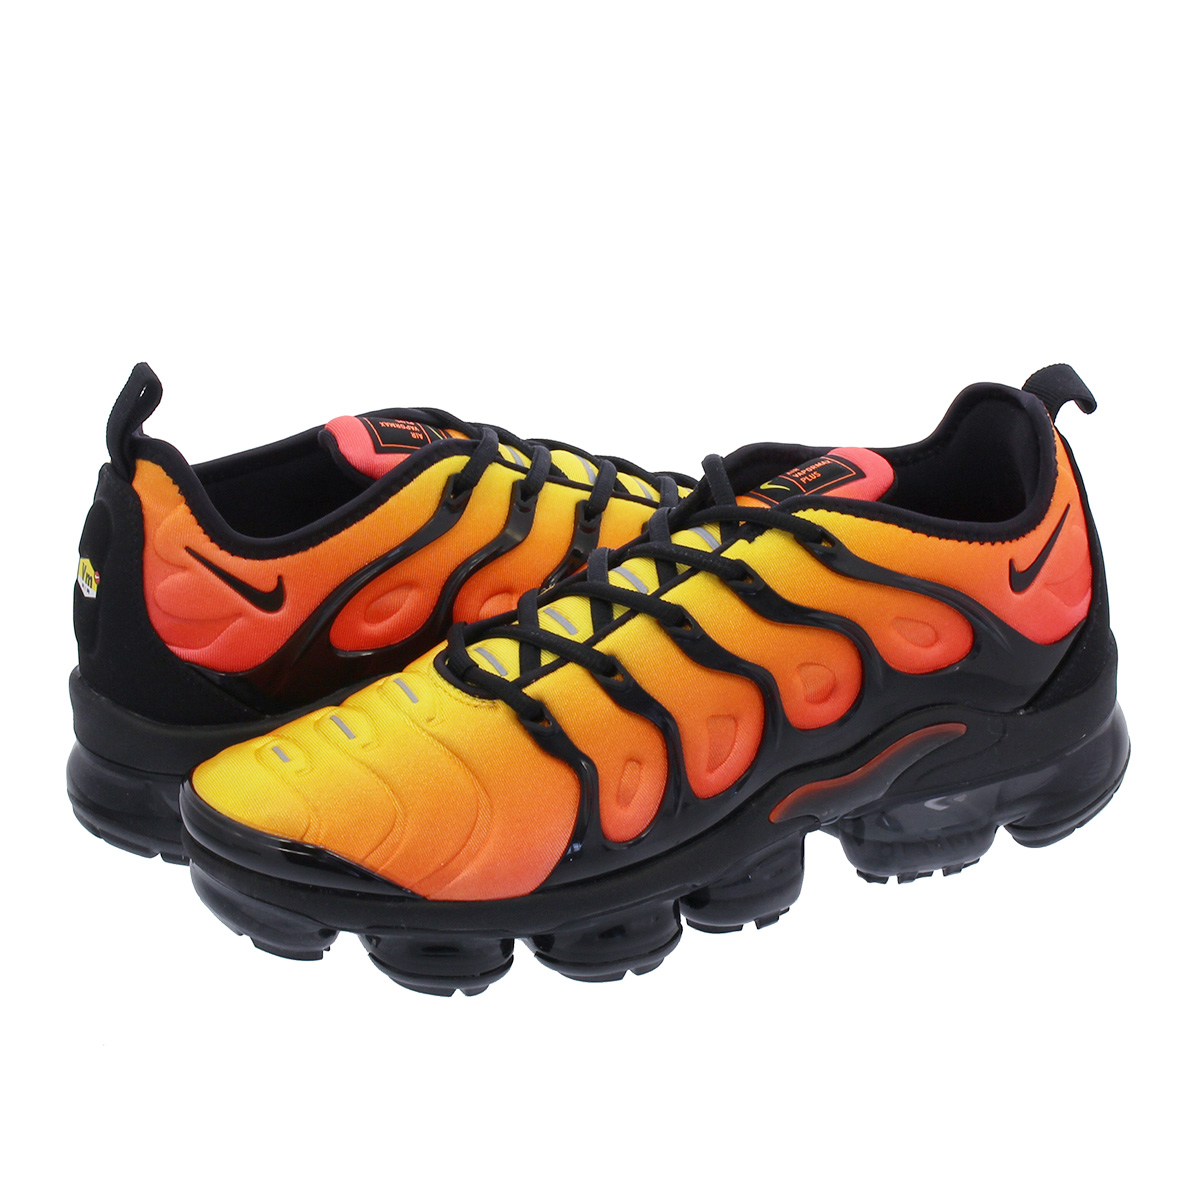 on sale 1044a 05e0c NIKE AIR VAPORMAX PLUS Nike vapor max plus TOTAL ORANGE/BLACK/TOTAL  CRIMSON/SUNSET 924,453-006